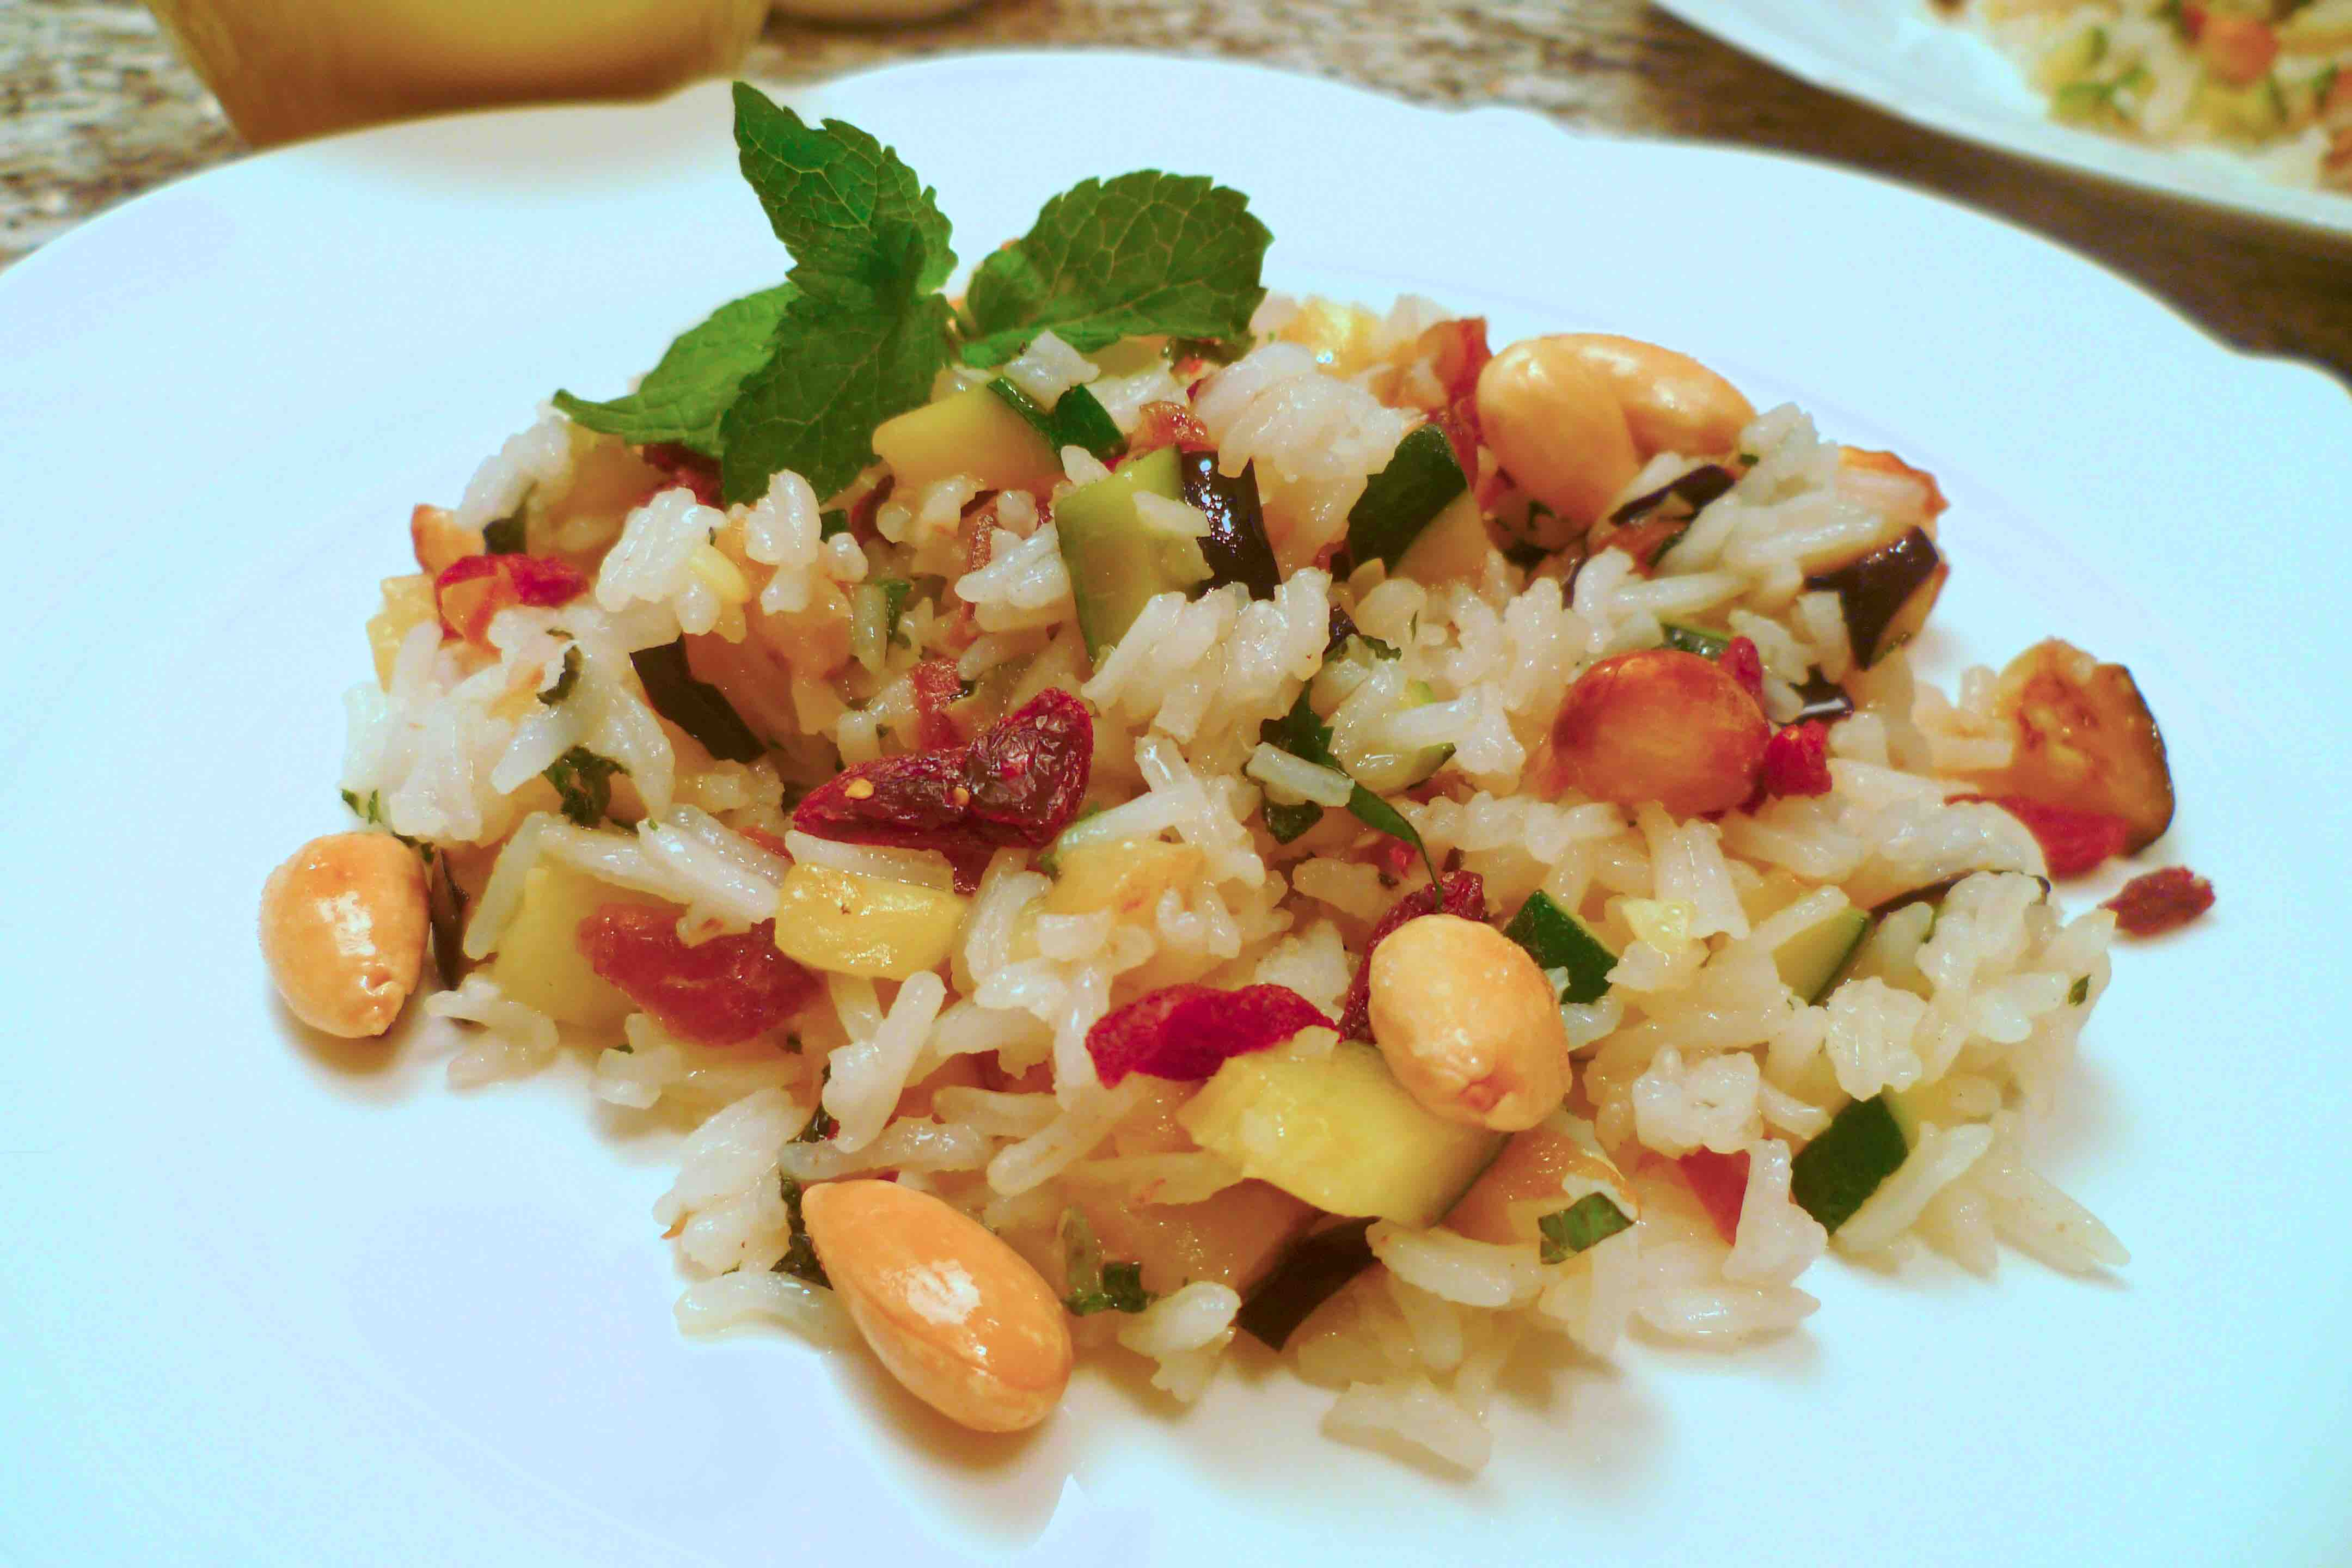 Healthy and Oriental: Rice Salad with Mint, served with Almonds, Dates and Vegetables